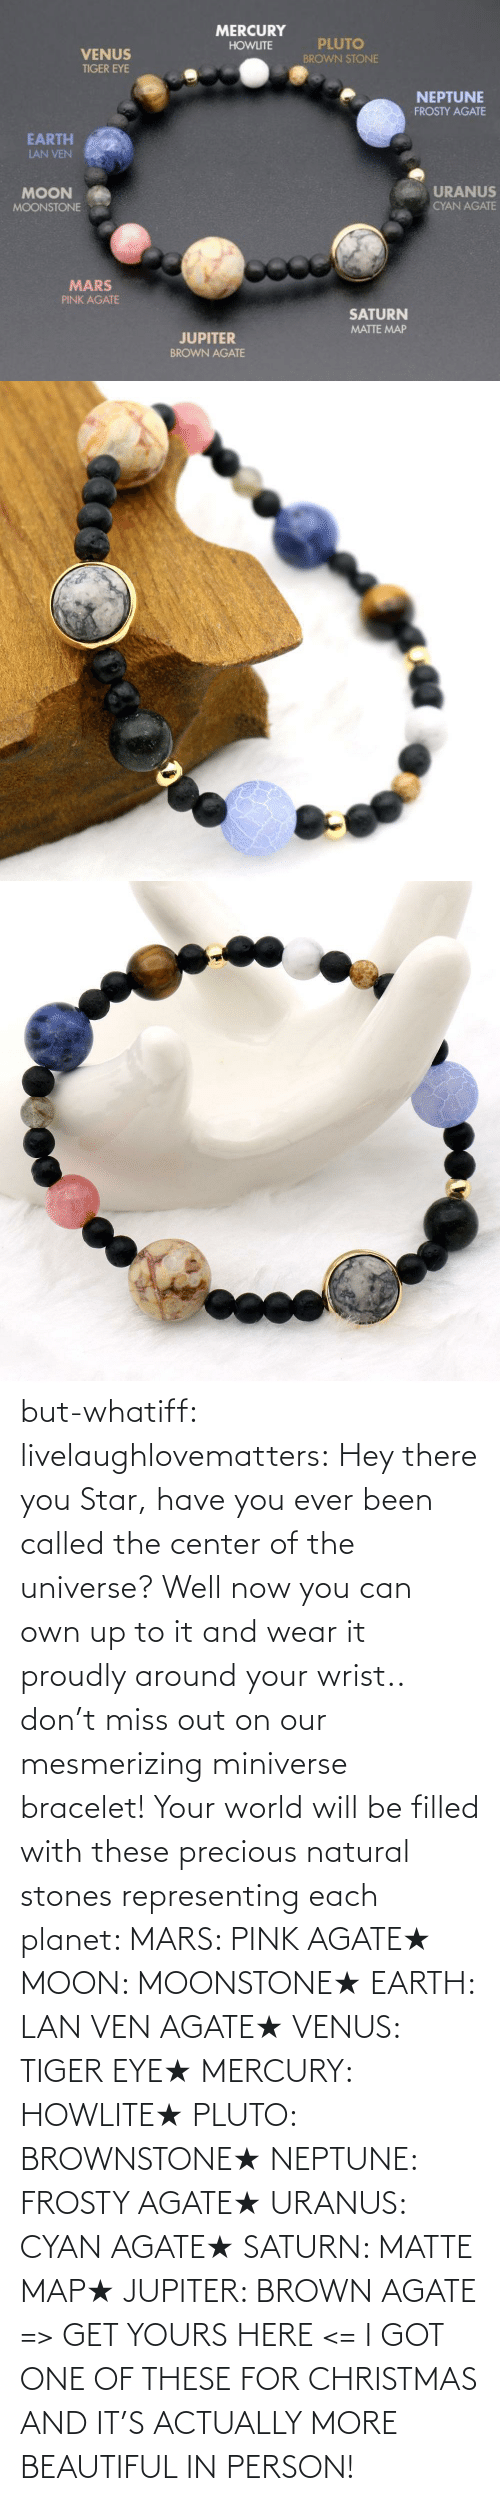 eye: but-whatiff:  livelaughlovematters:  Hey there you Star, have you ever been called the center of the universe? Well now you can own up to it and wear it proudly around your wrist.. don't miss out on our mesmerizing miniverse bracelet! Your world will be filled with these precious natural stones representing each planet:  MARS: PINK AGATE★ MOON: MOONSTONE★ EARTH: LAN VEN AGATE★ VENUS: TIGER EYE★ MERCURY: HOWLITE★ PLUTO: BROWNSTONE★ NEPTUNE: FROSTY AGATE★ URANUS: CYAN AGATE★ SATURN: MATTE MAP★ JUPITER: BROWN AGATE => GET YOURS HERE <=  I GOT ONE OF THESE FOR CHRISTMAS AND IT'S ACTUALLY MORE BEAUTIFUL IN PERSON!